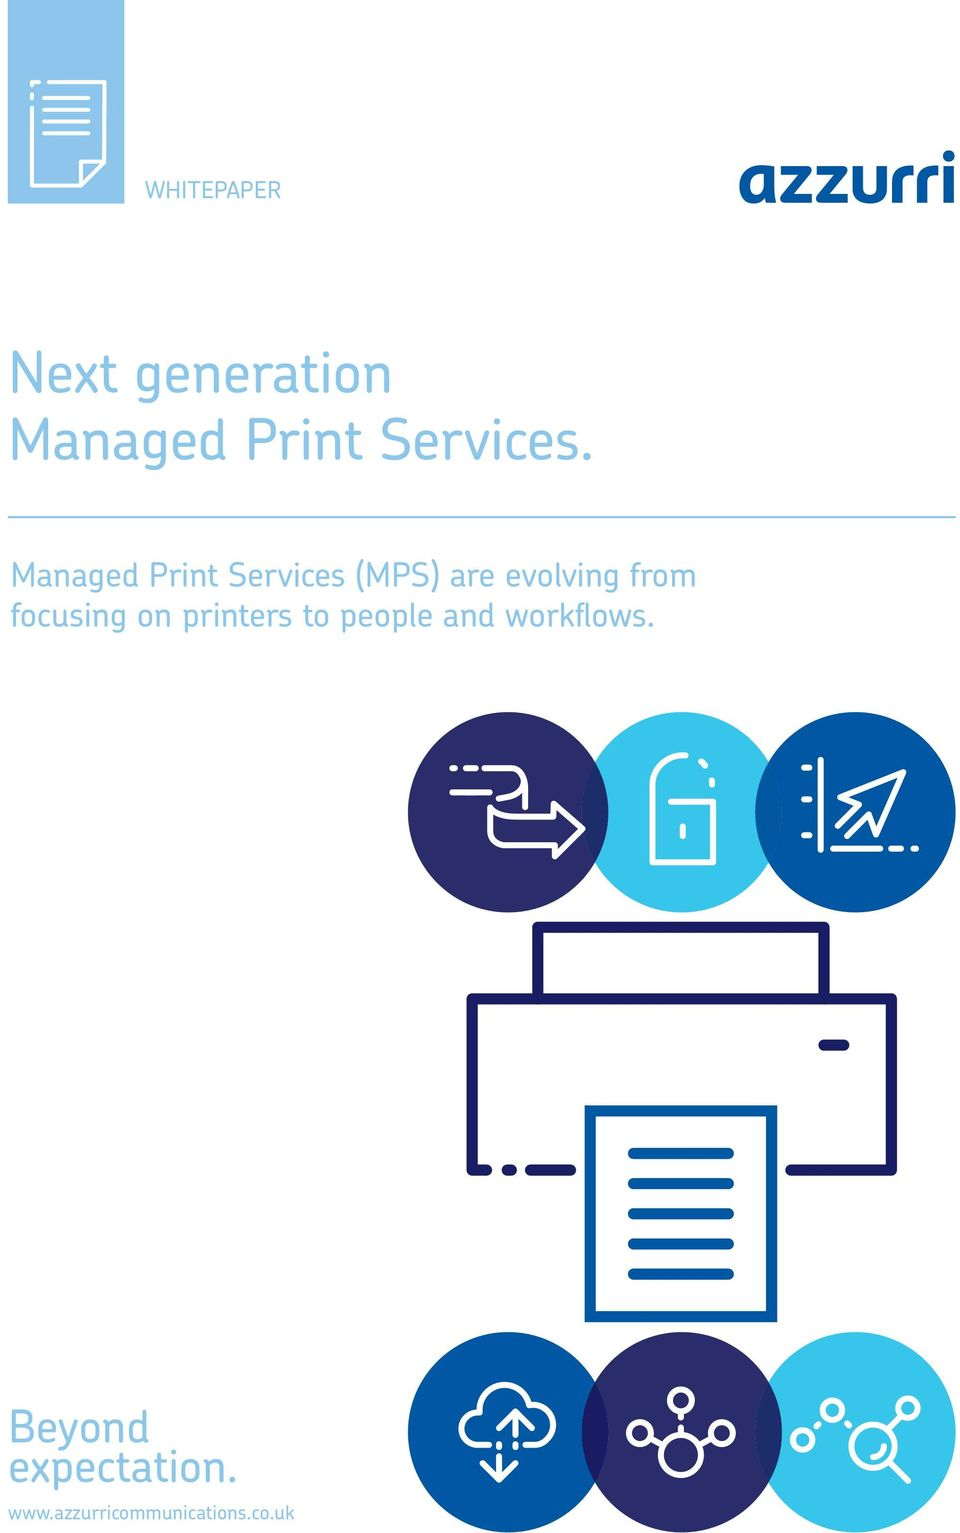 Managed Print Services (MPS) are evolving from